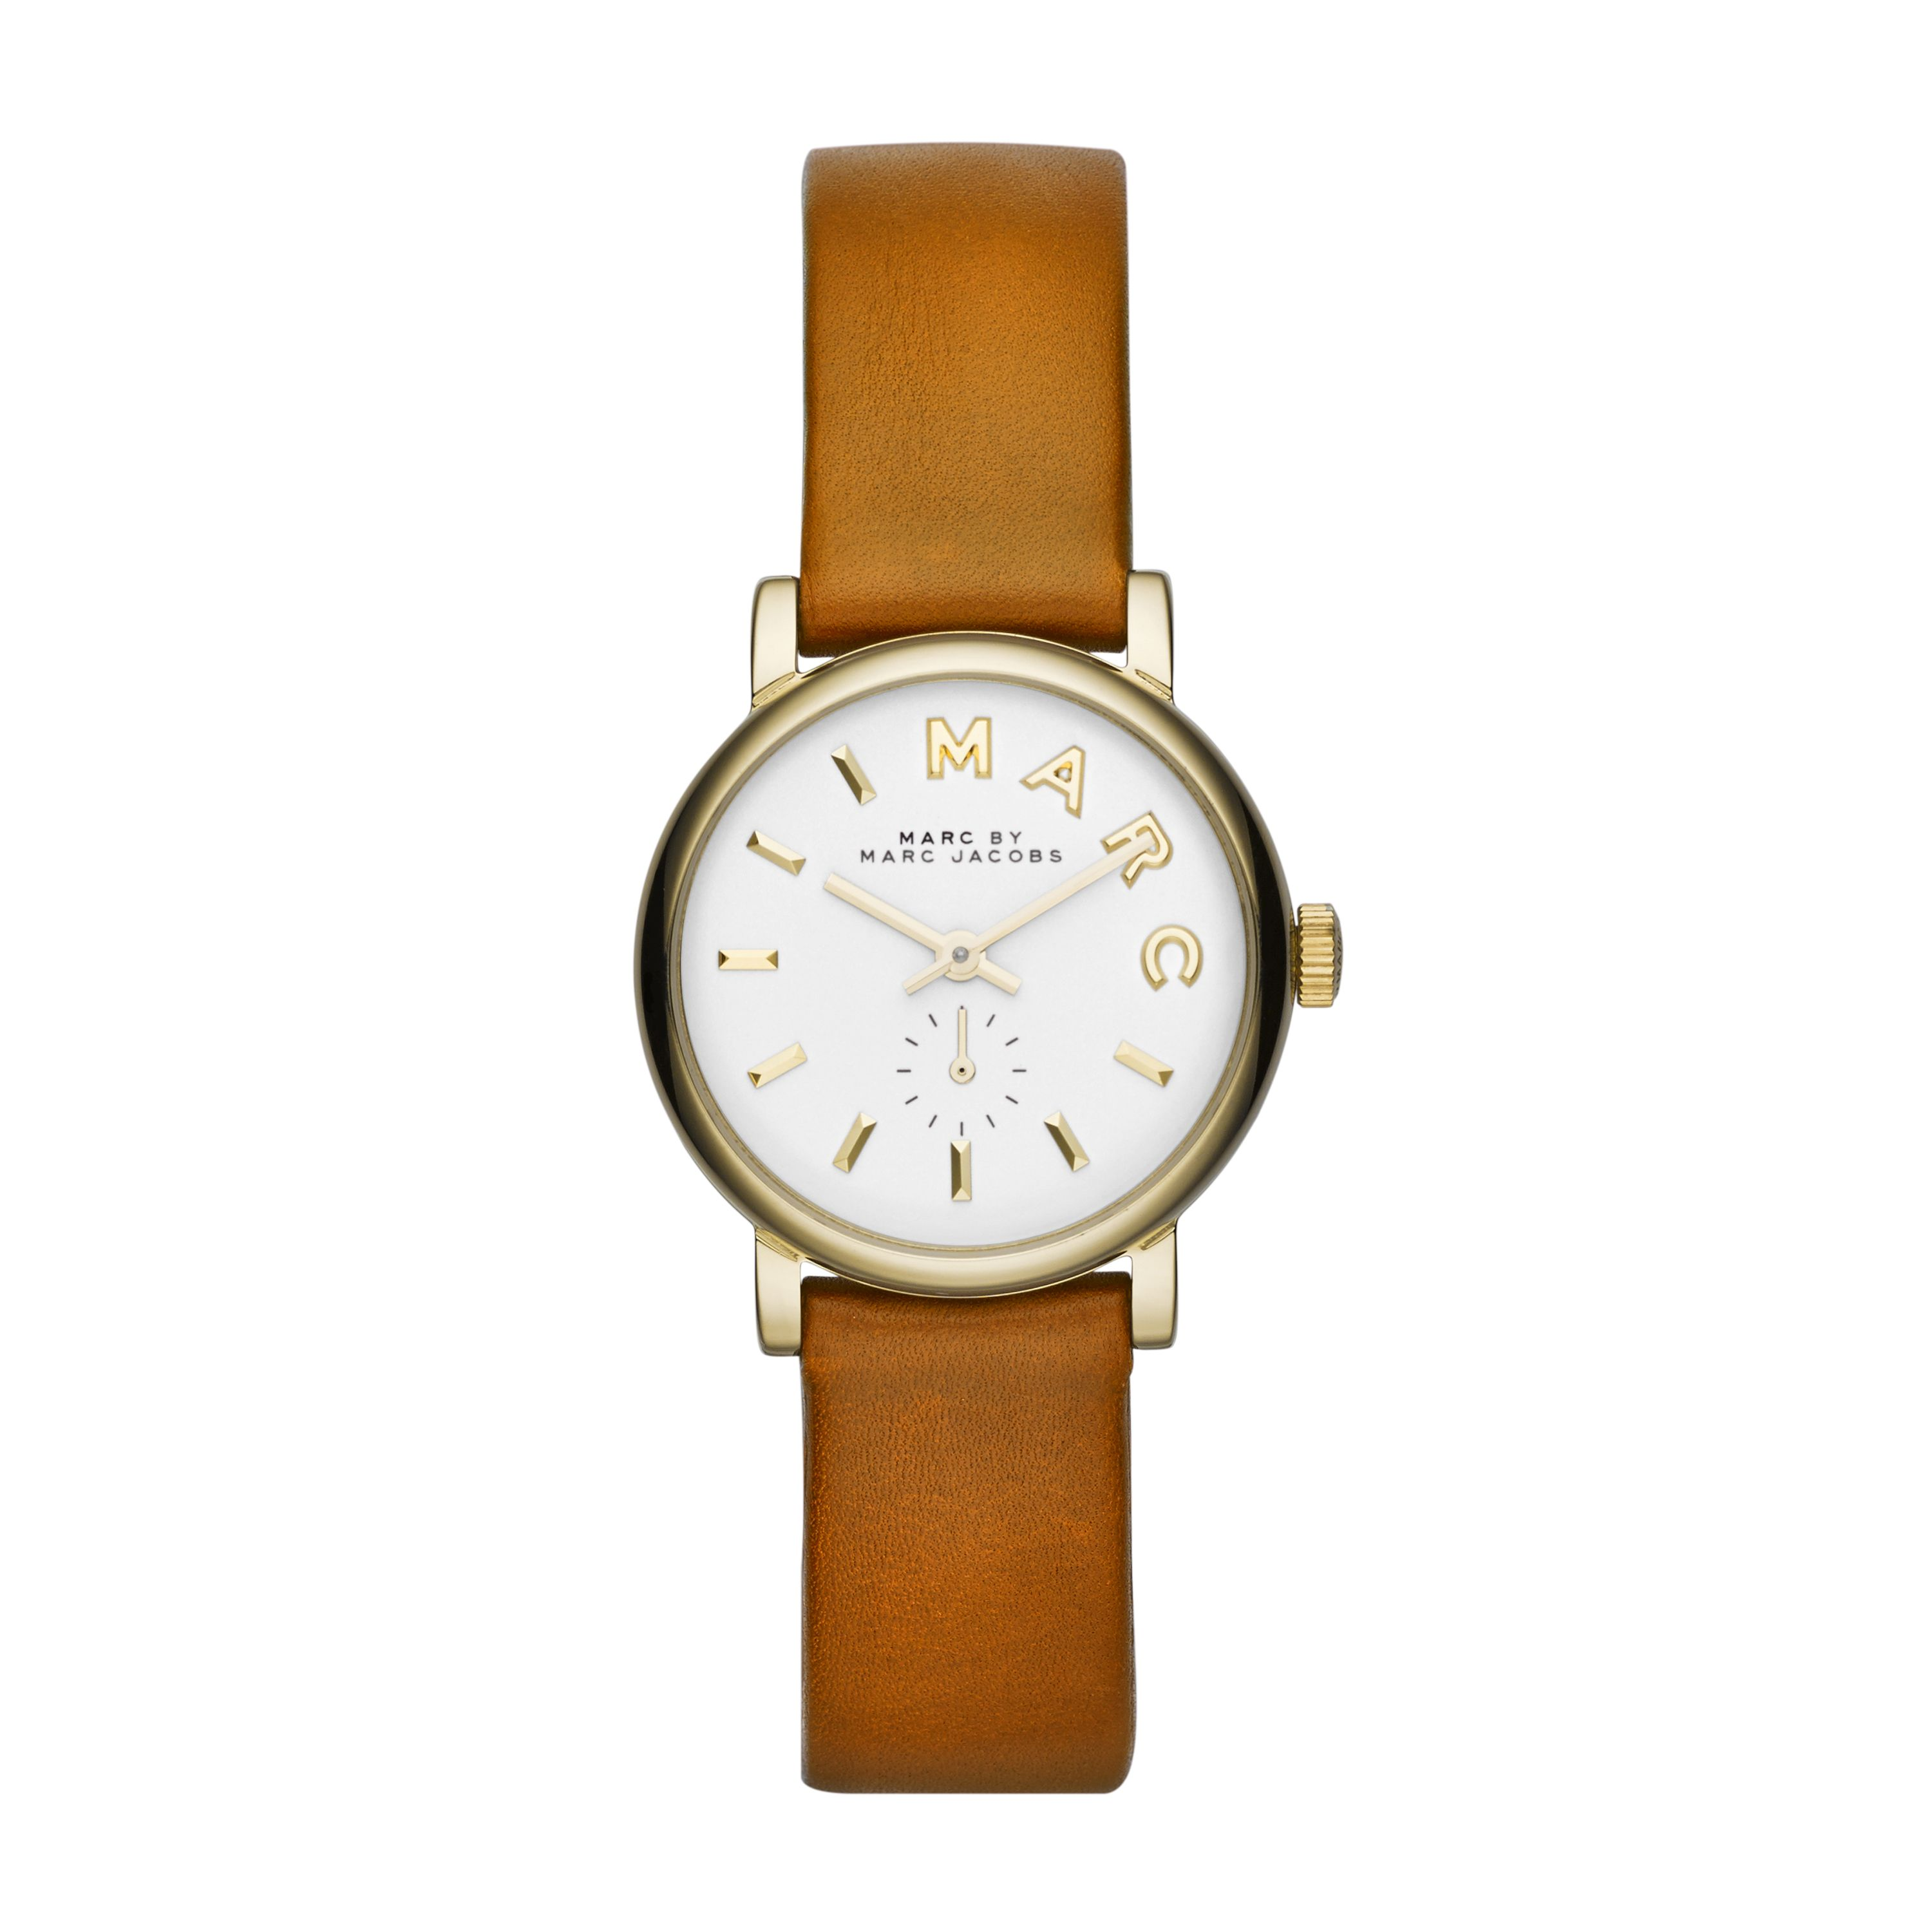 MBM1317 Baker ladies calf leather gold watch